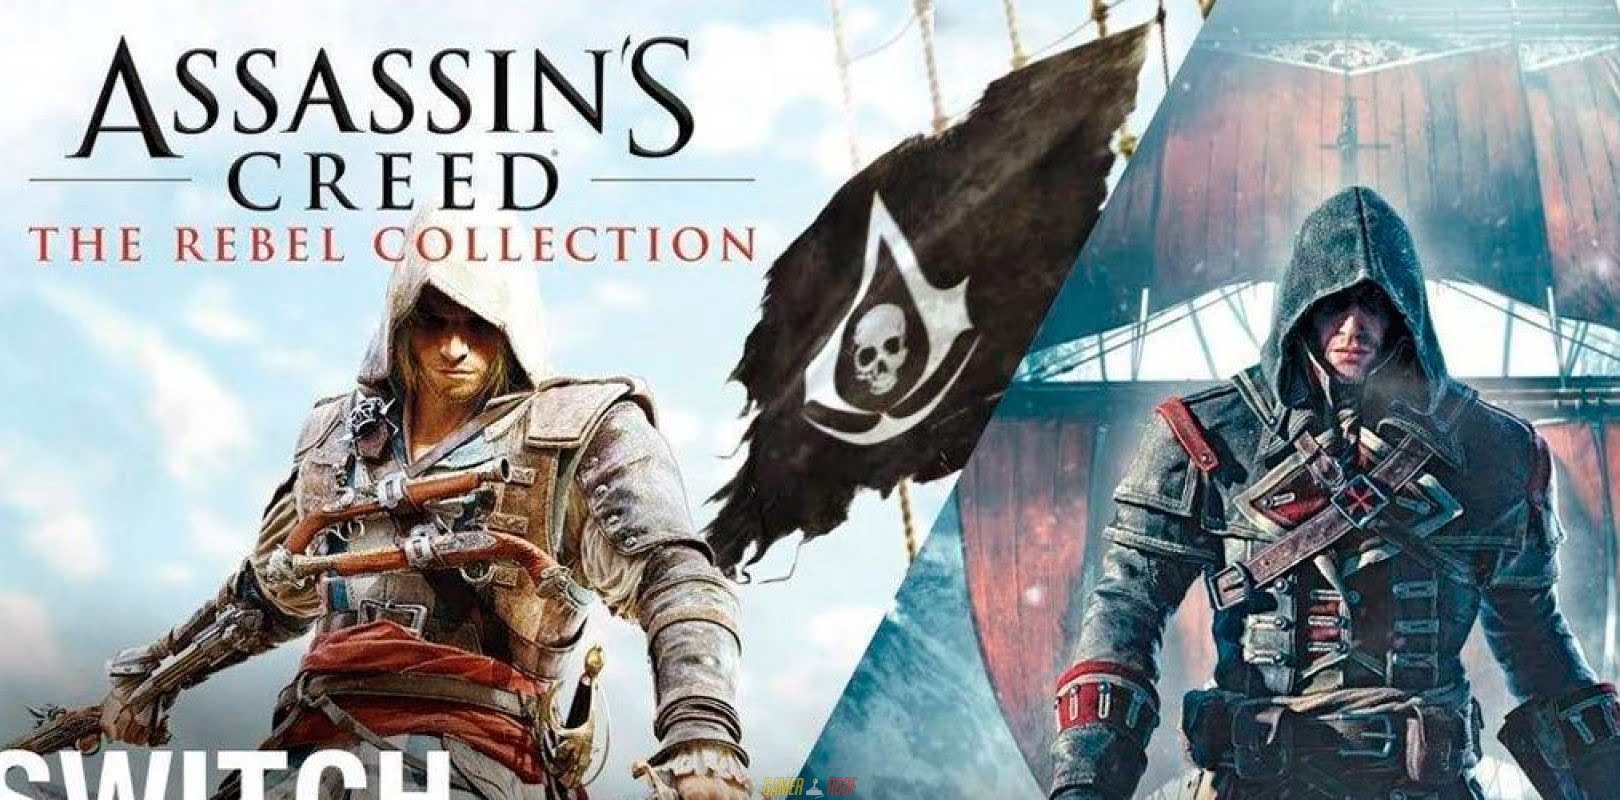 Assassin's Creed The Rebel Collection PC Version Full Game Free Download